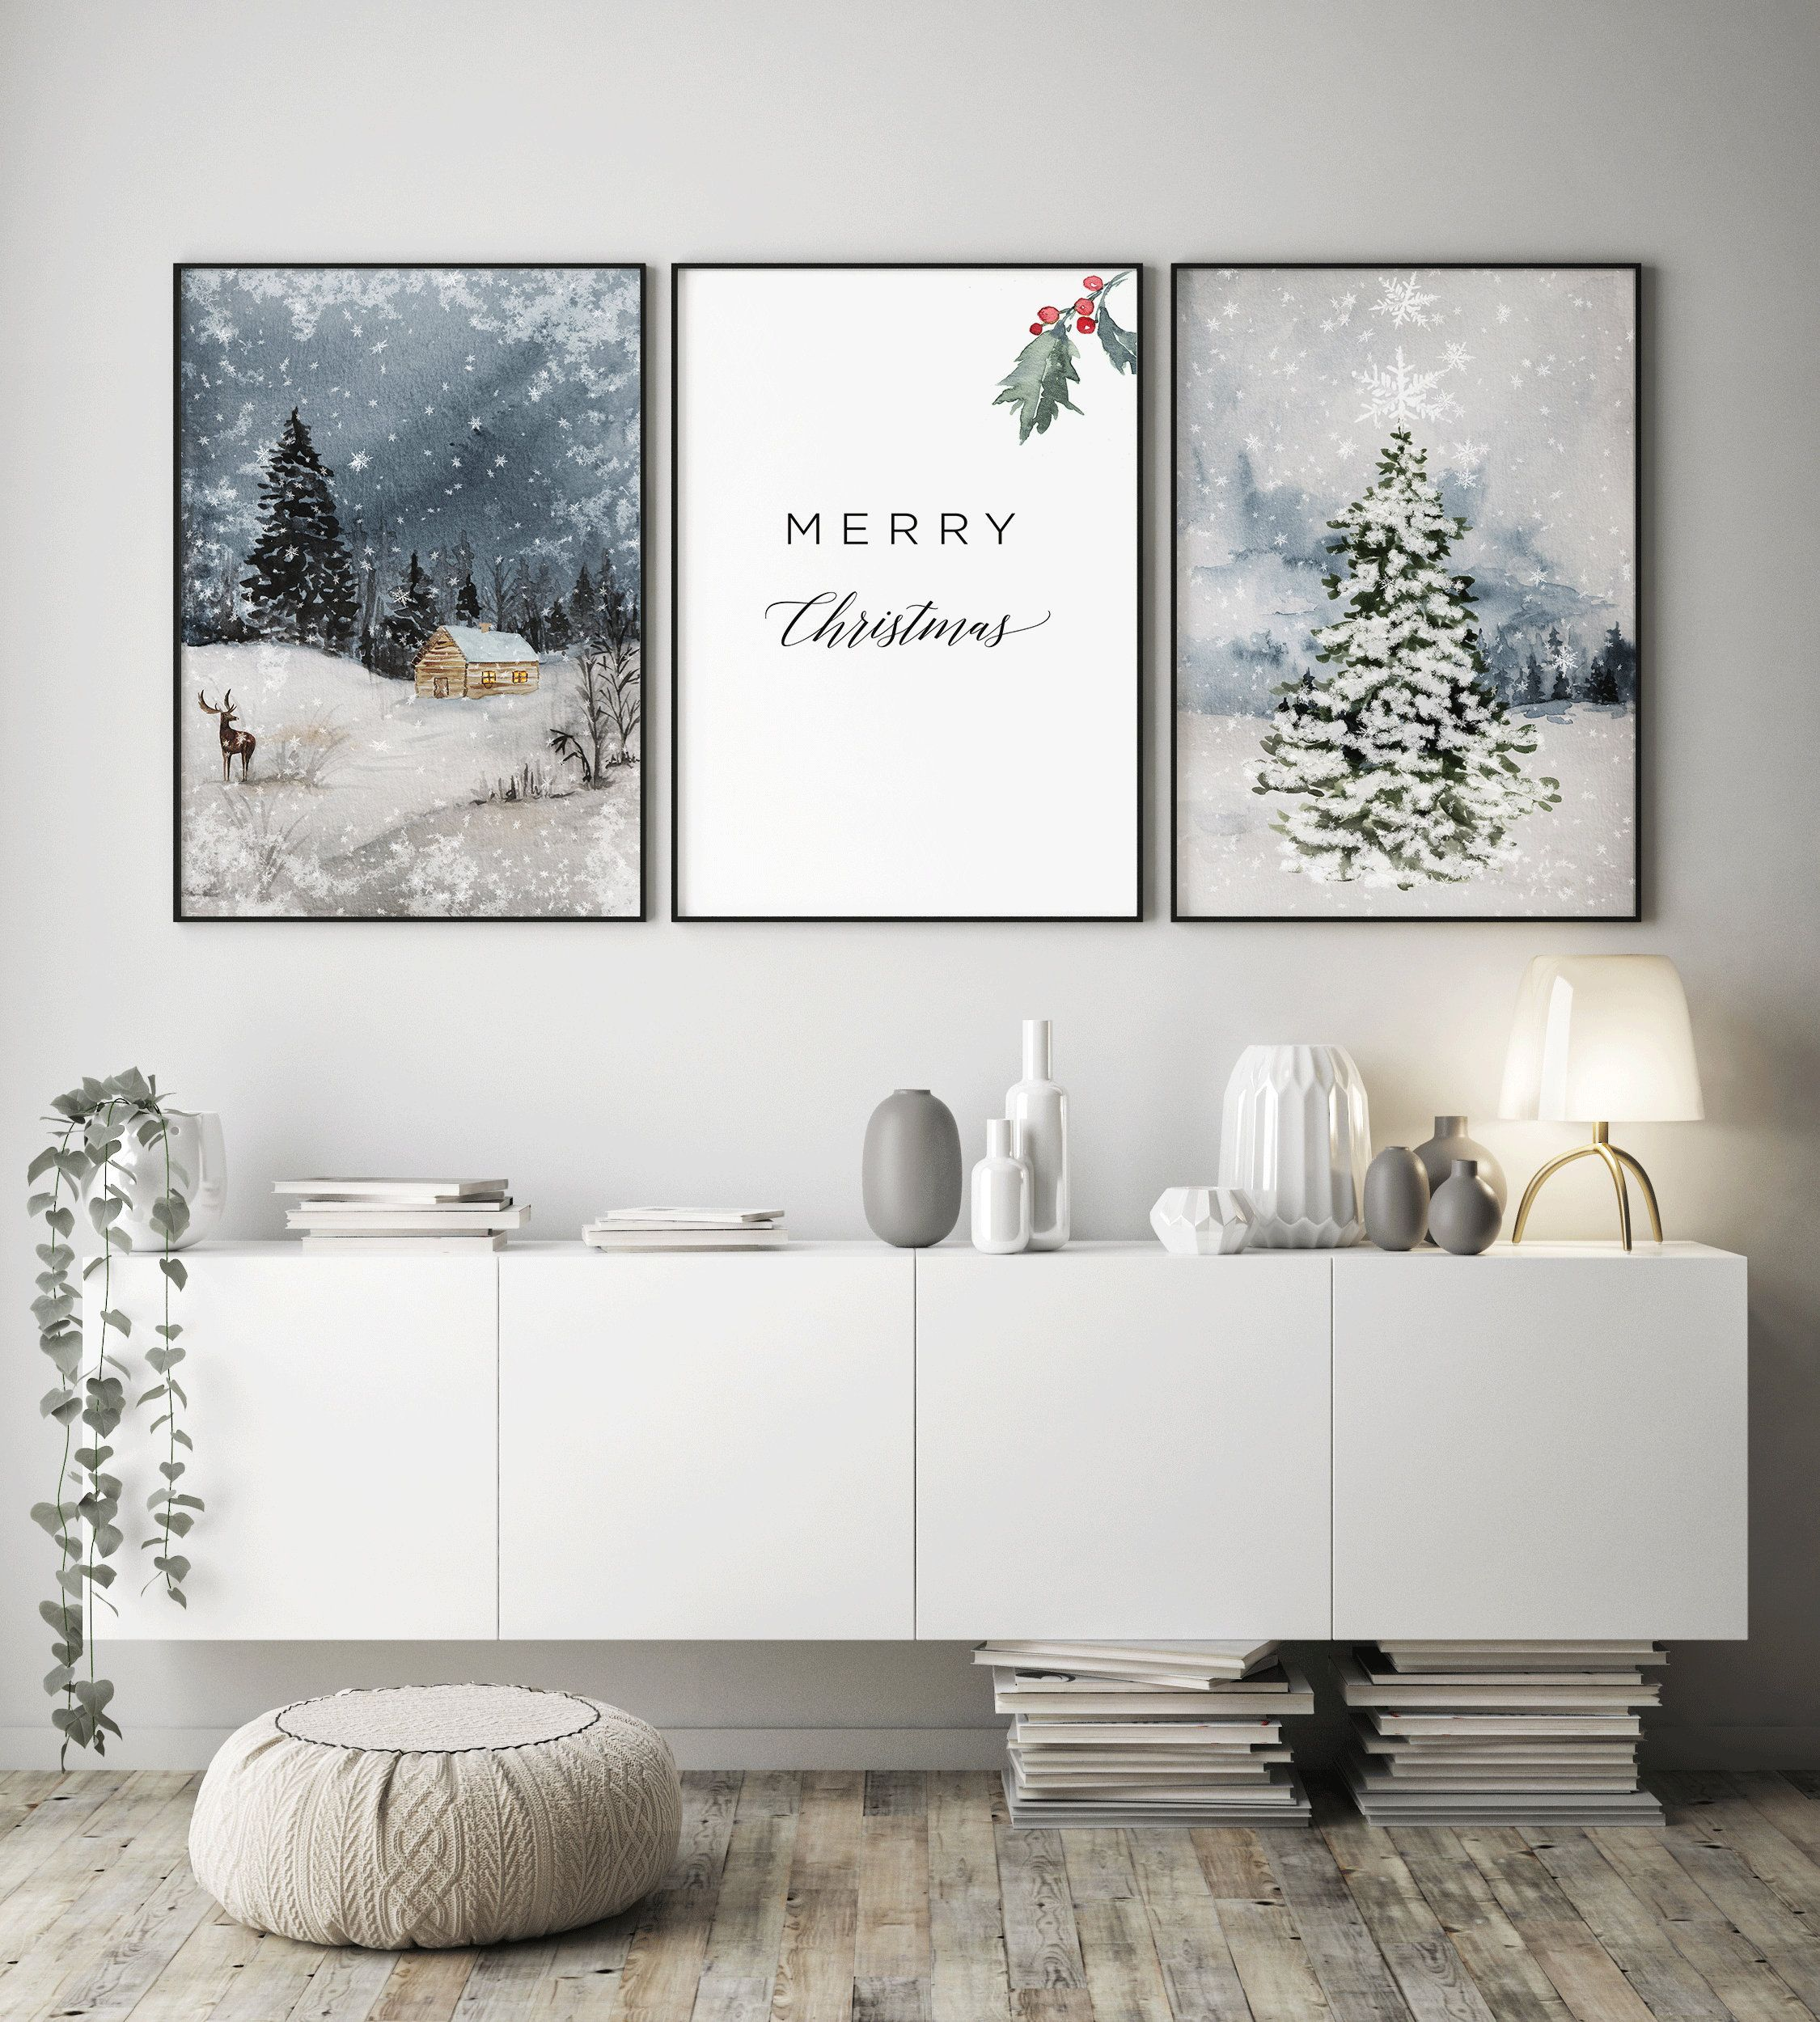 Christmas Wall Artchristmas Printable Setmerry Etsy 3 Piece Wall Art Floral Wall Art Prints Floral Bedroom Decor